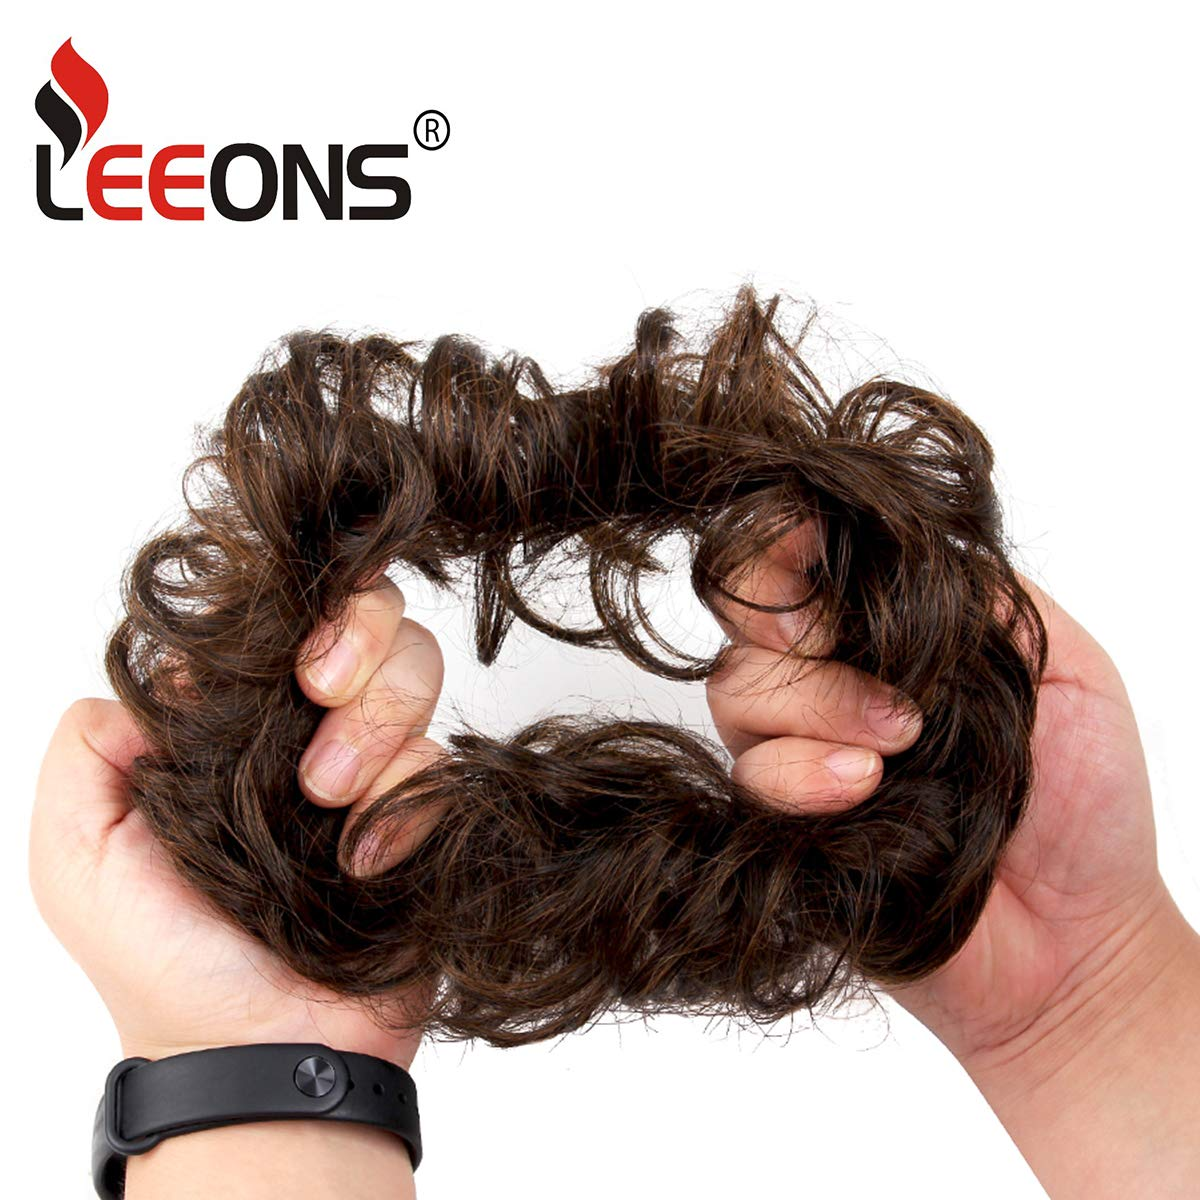 Leeons Wavy Donut Updo Ribbon Ponytail Hair Extensions Curly Messy Bun Dish Scrunchy Scrunchie Hairpiece Wave Bun Scrunchie Synthetic Hair Bun (#2) by LEEONS (Image #5)